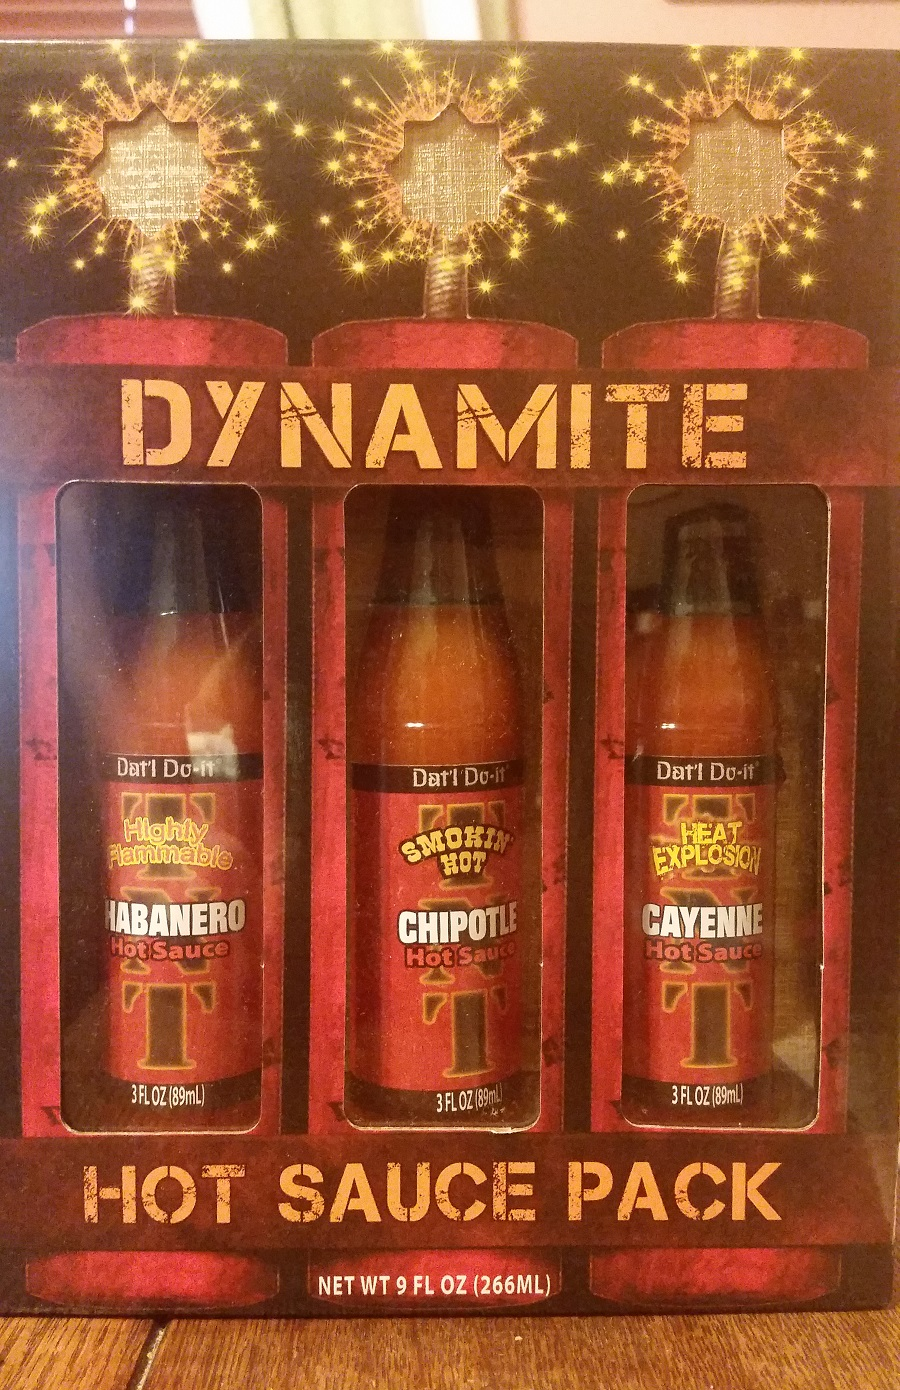 Dynamite Hot Sauce Pack